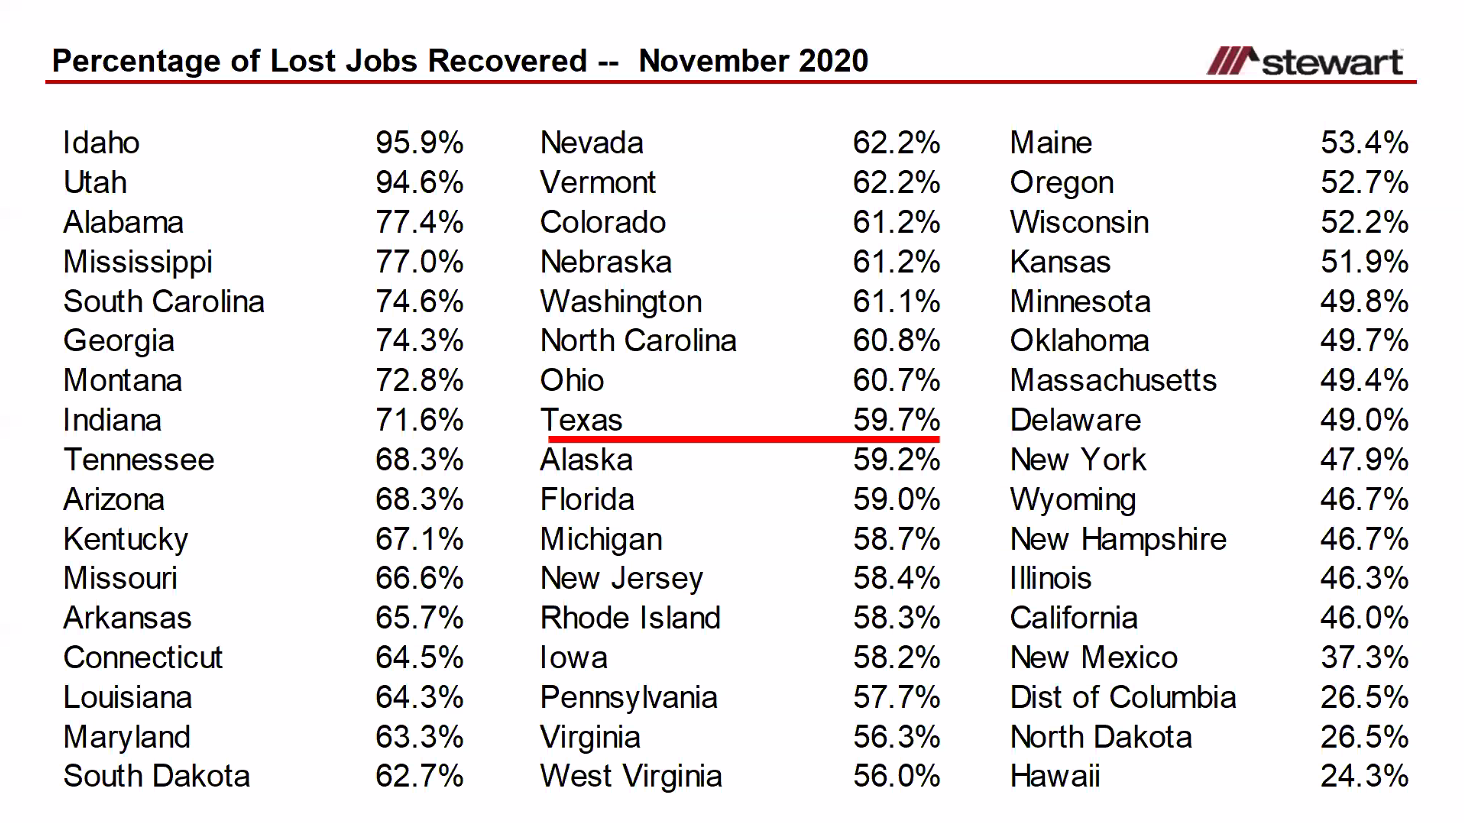 Texas job losses and recoveries